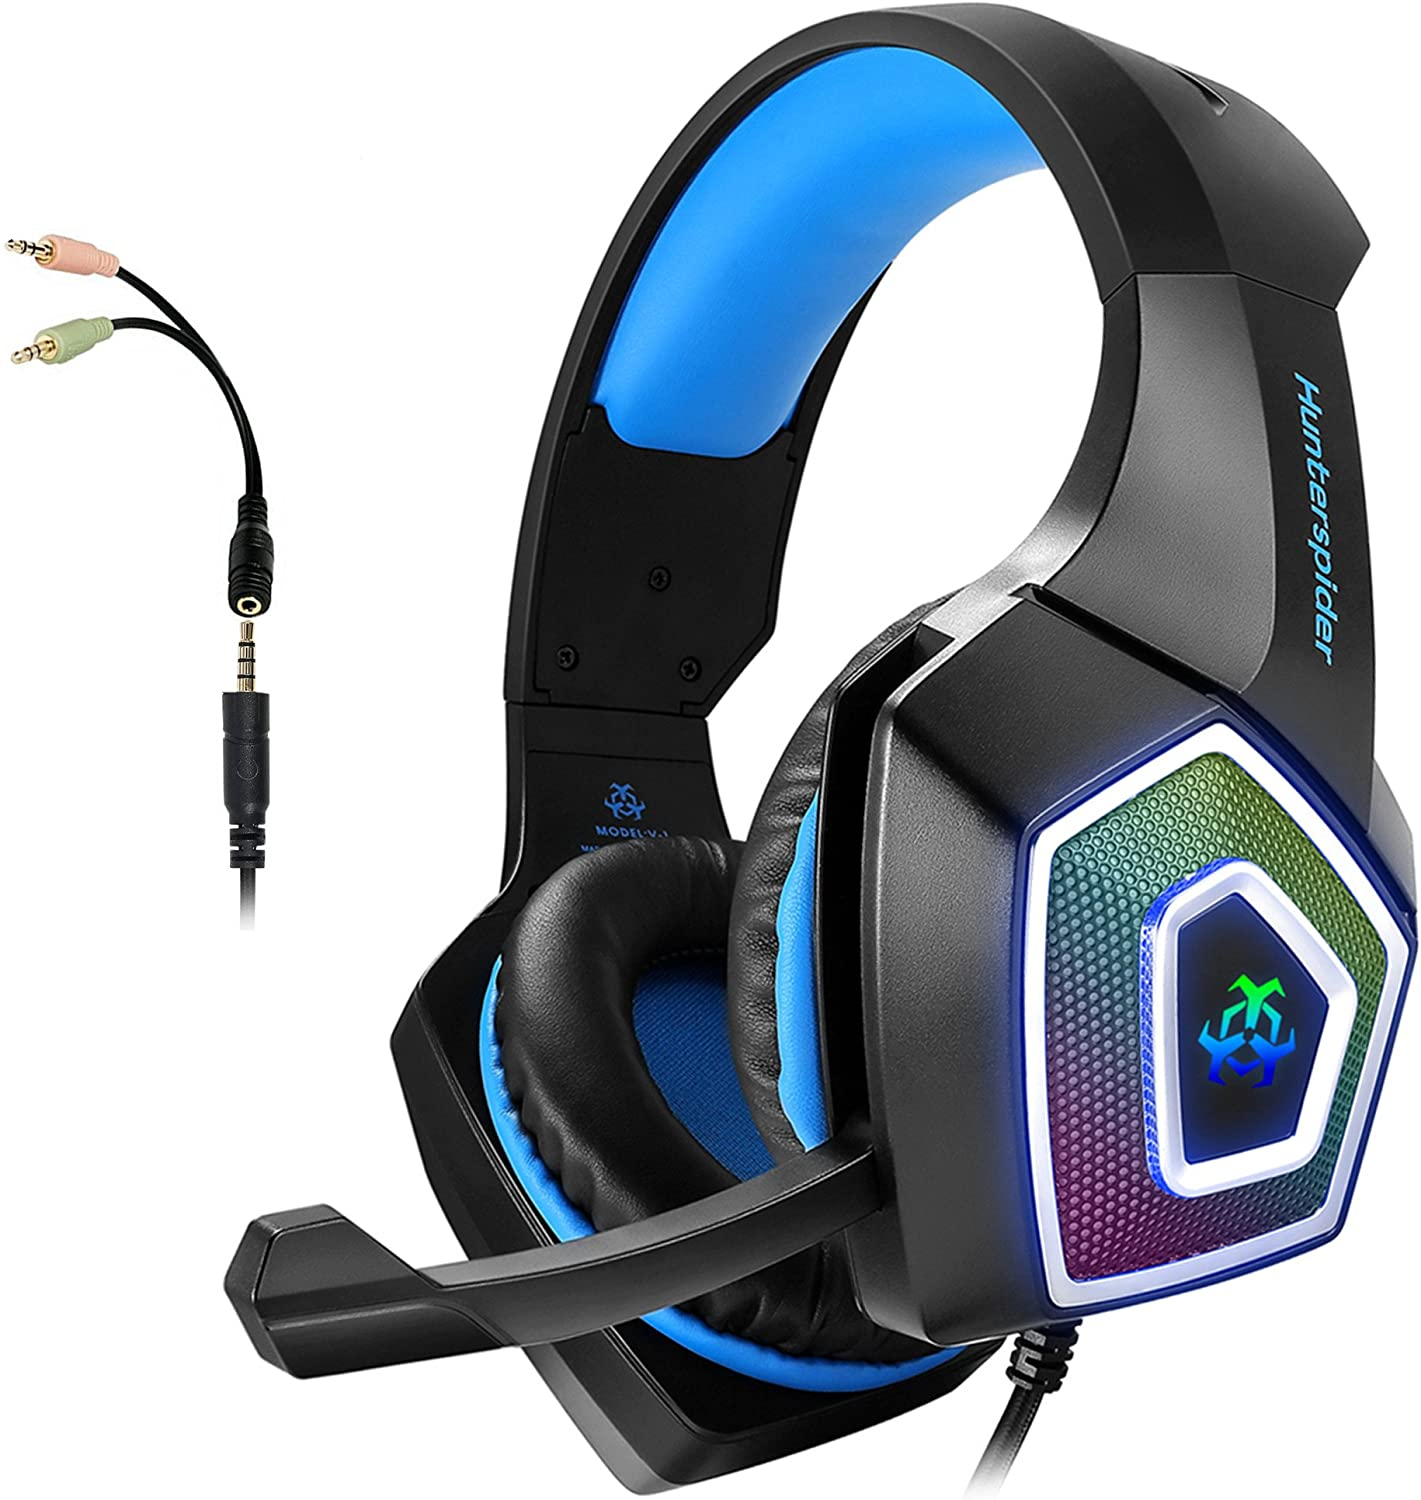 Gaming Headset with Mic for Xbox One PS4 PC Switch Tablet Smartphone, Headphones Stereo Over Ear Bass 3.5mm Microphone Noise Canceling 7 LED Light Soft Memory Earmuffs(Free Adapter)